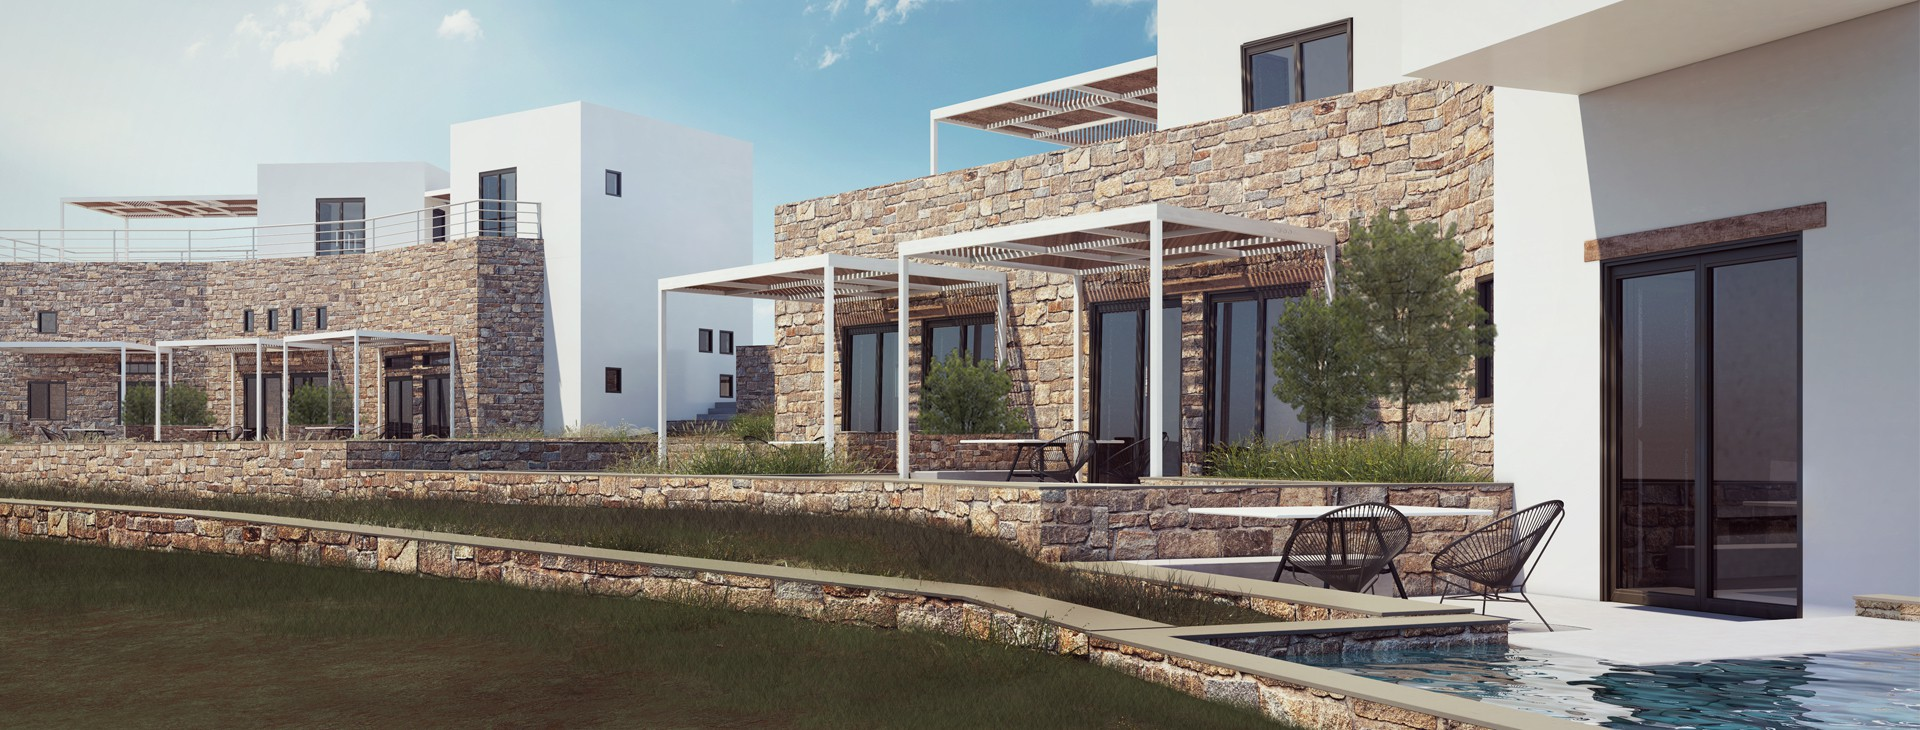 Kalimera Karpathos | Exclusive Villas